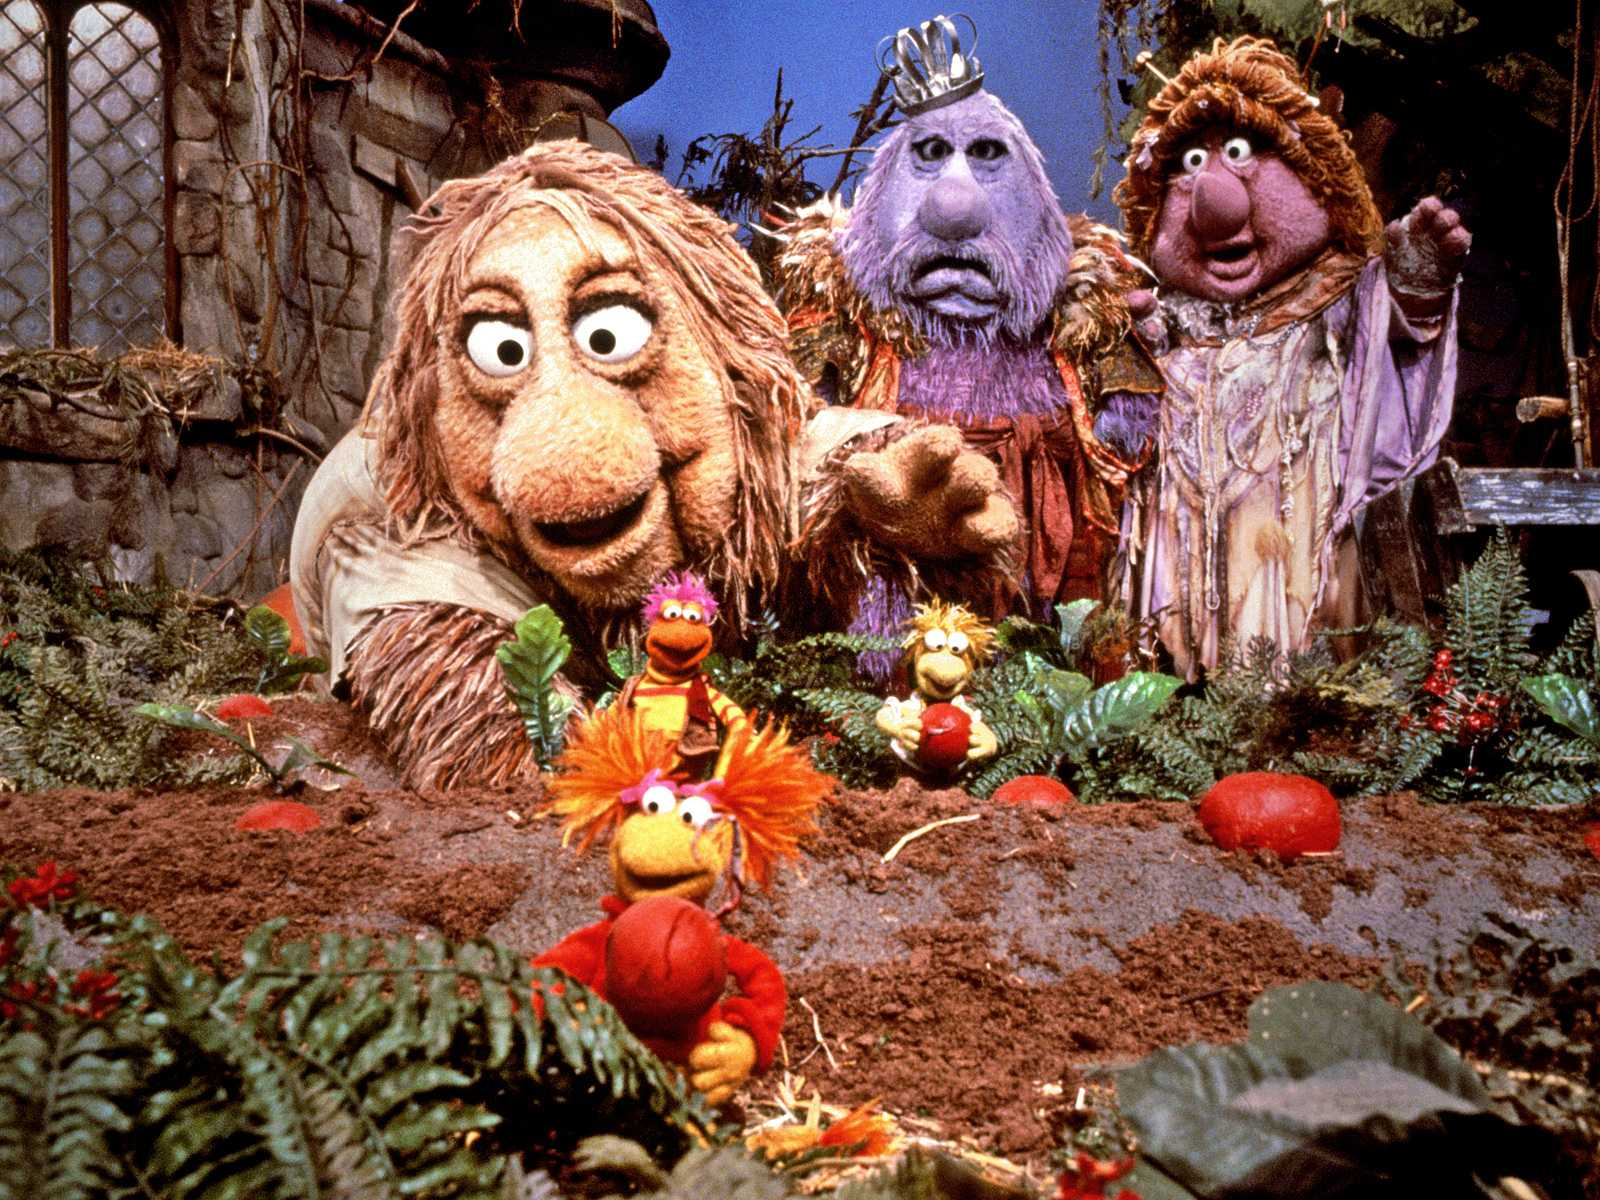 The Muppets Of Fraggle Rock To Make Their Big Screen Debut | Fraggle Rock